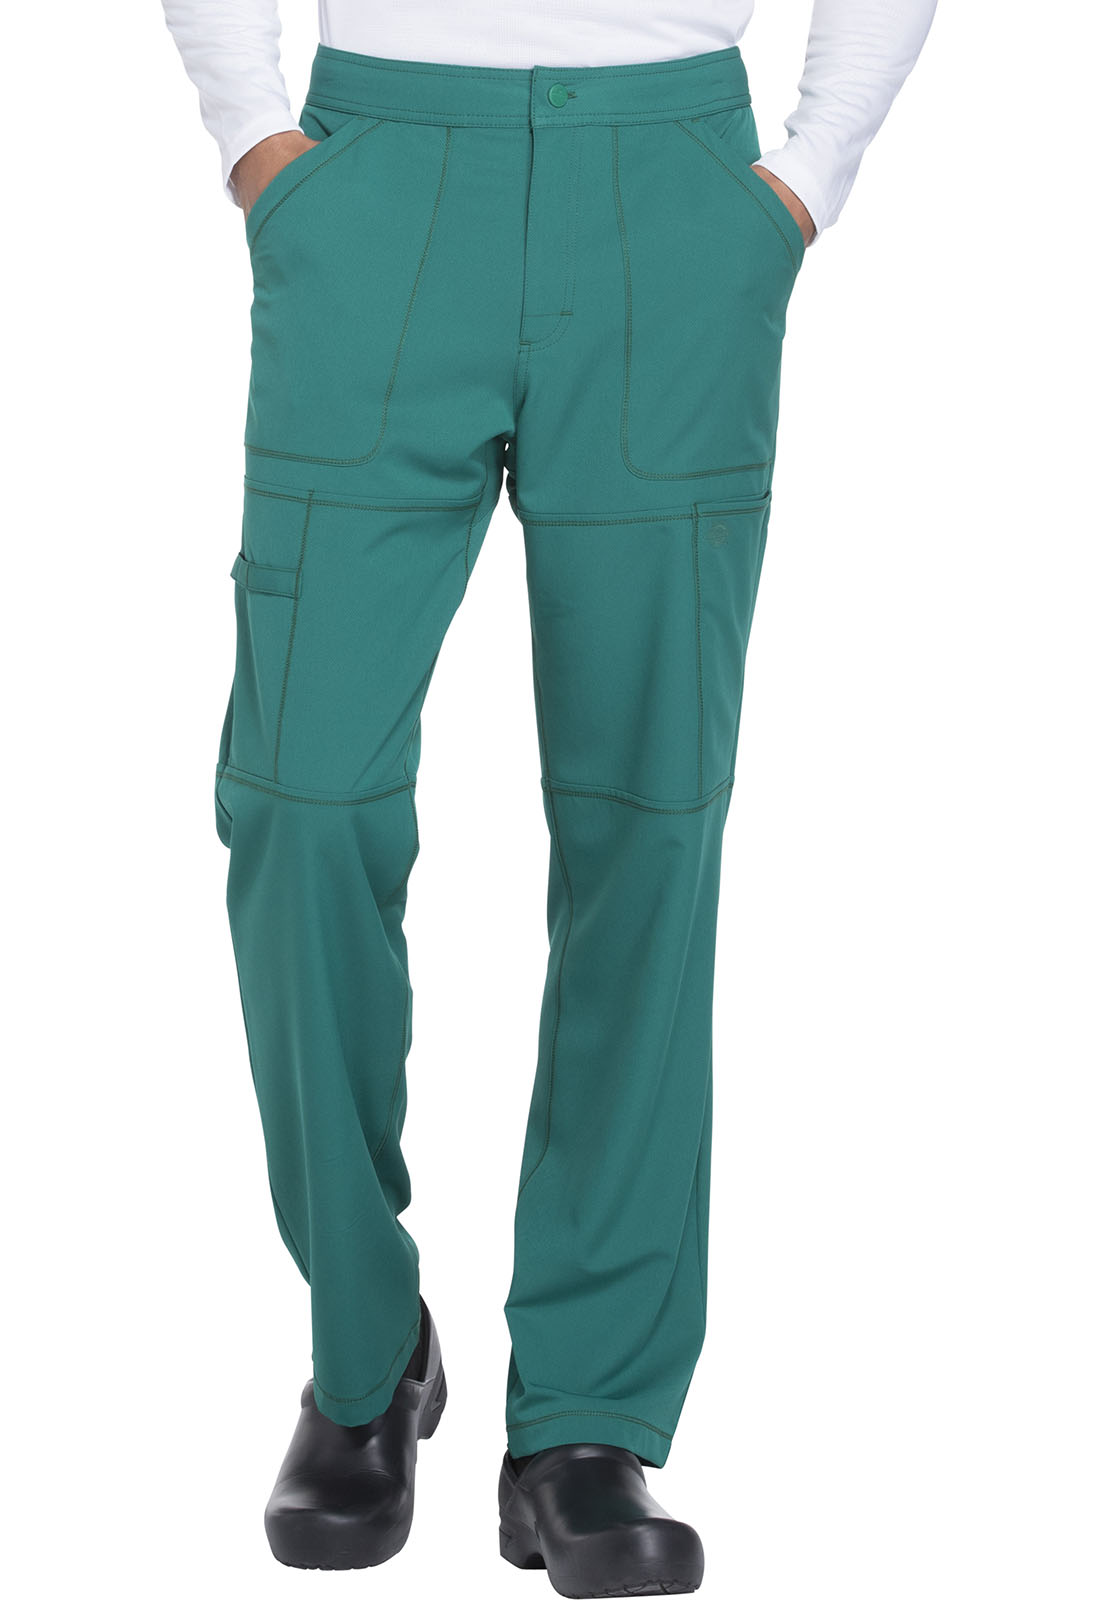 fefaaa11bea Dickies Dynamix Men's Zip Fly Cargo Pant in Hunter Green from ...